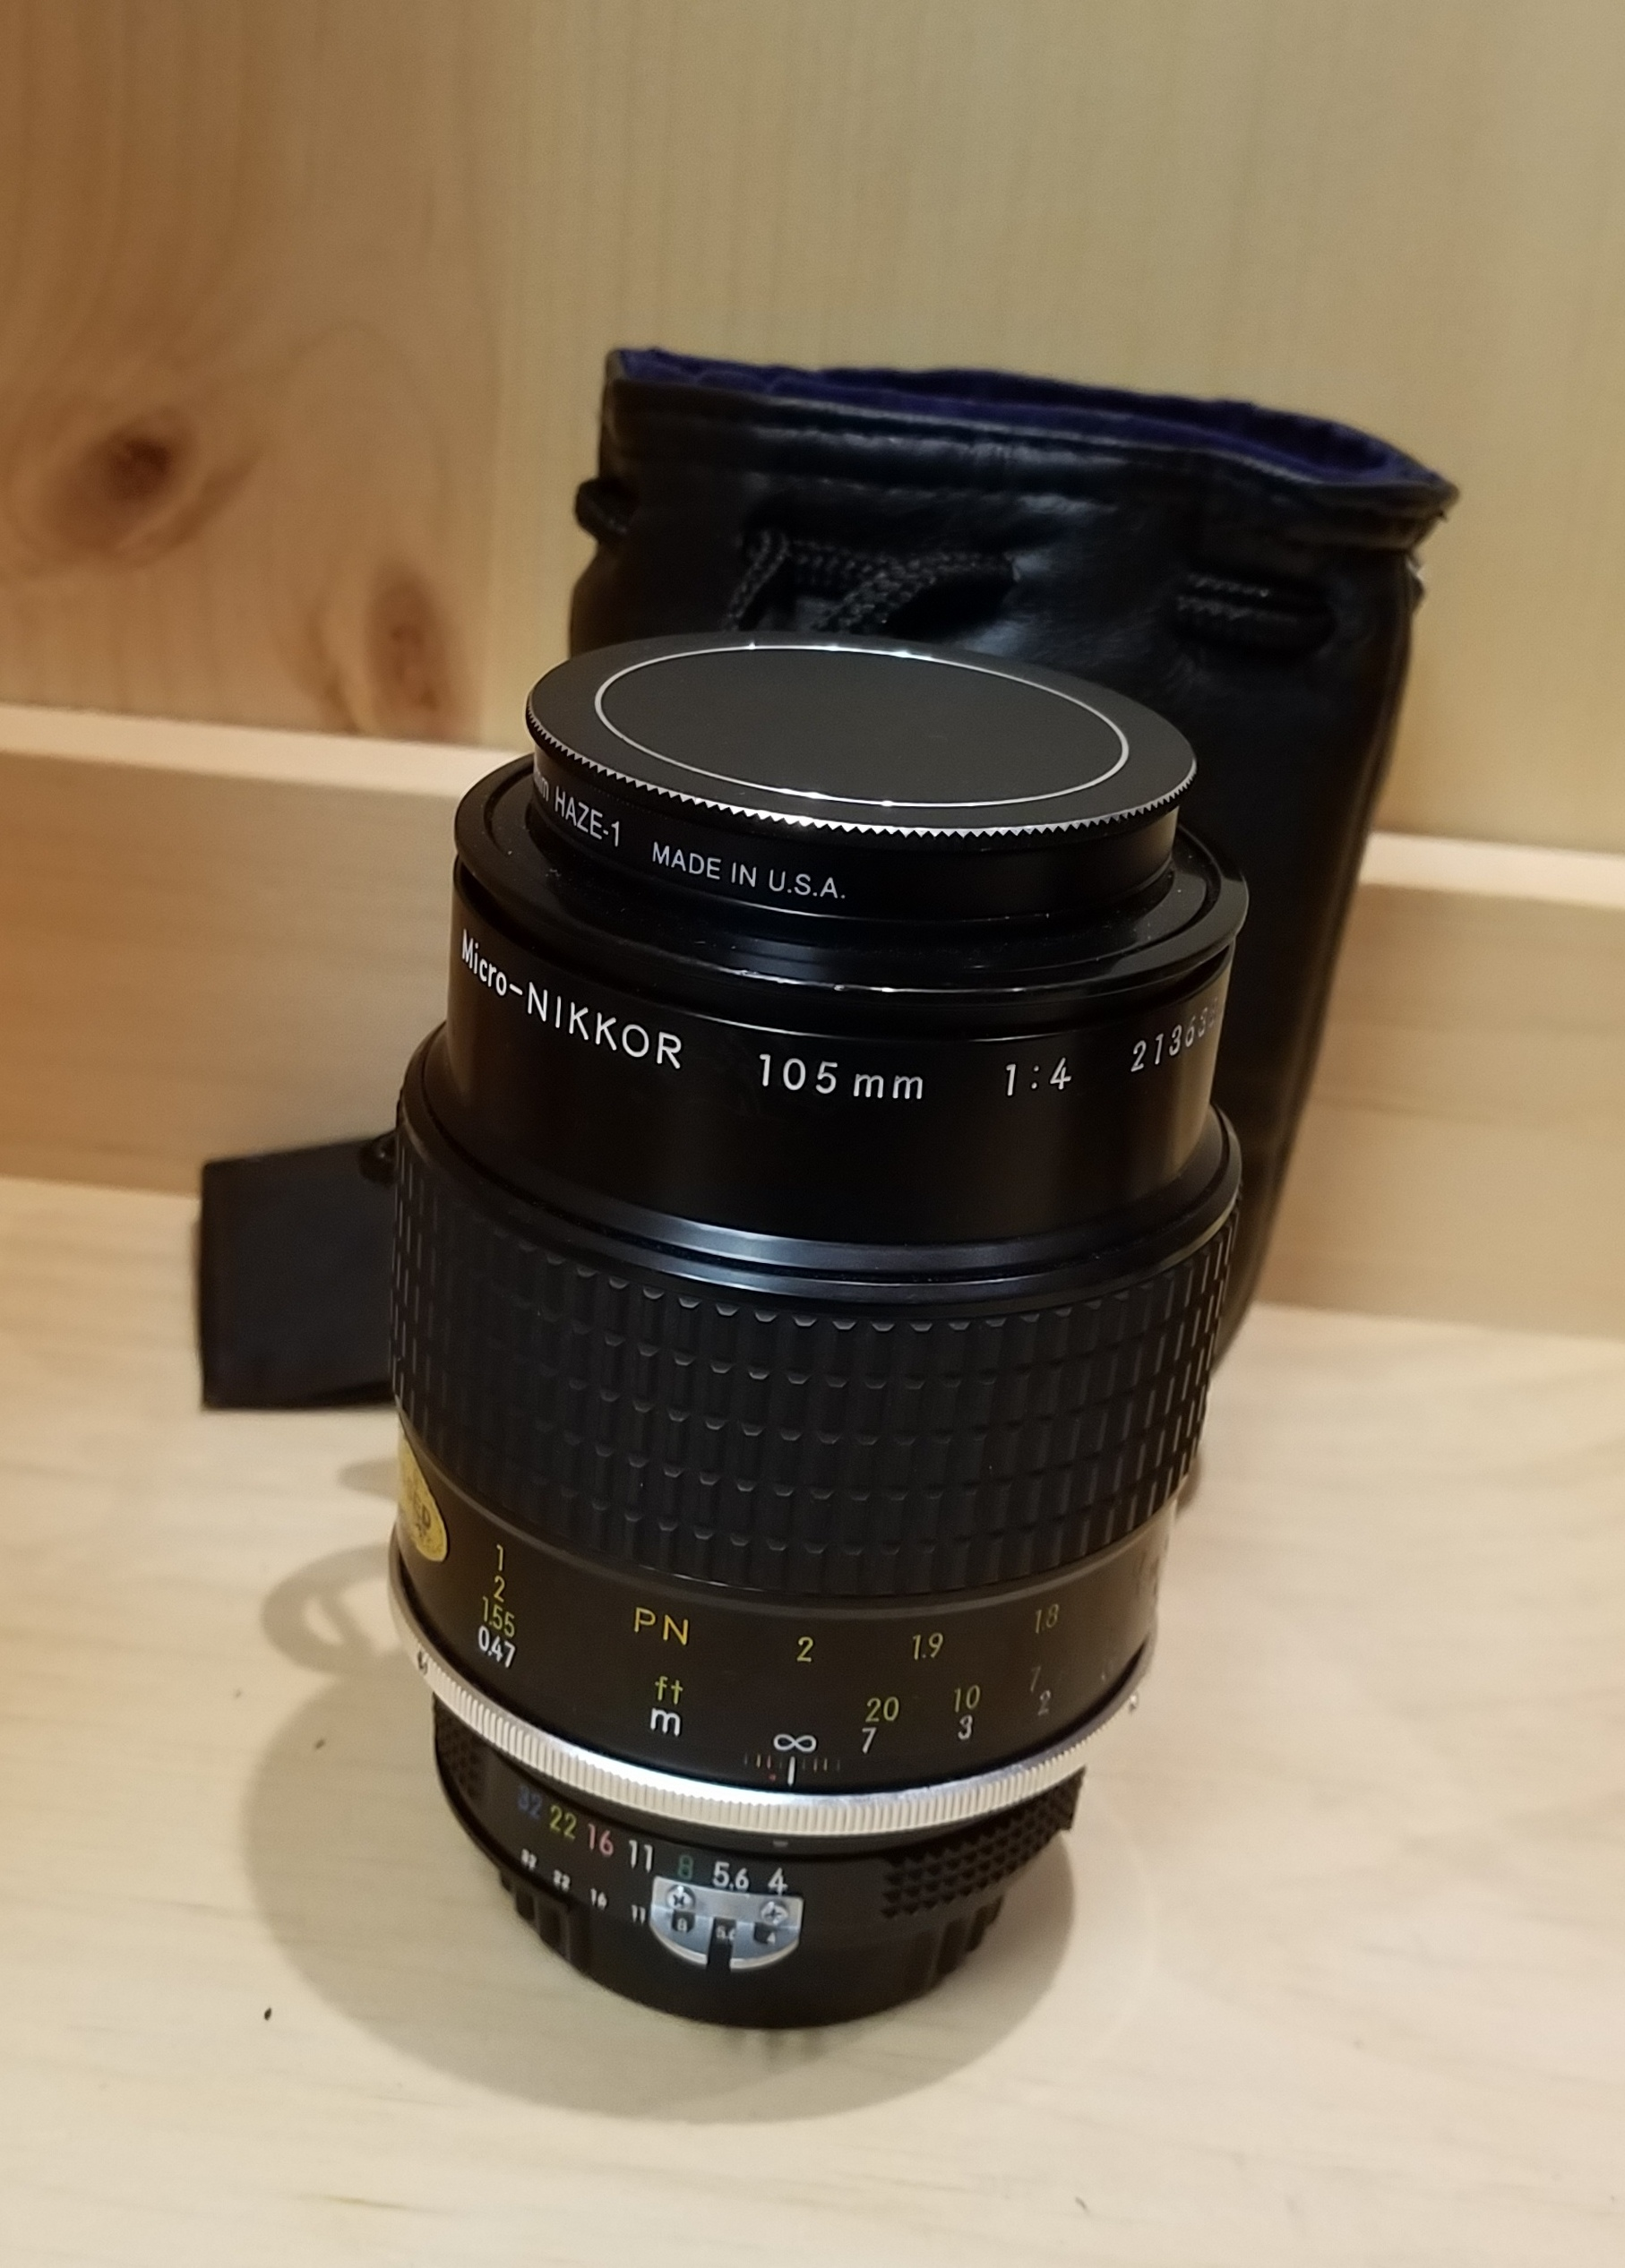 NIKON  NIKKOR TIFFEN  LENS CAMERA EQUIPMENT